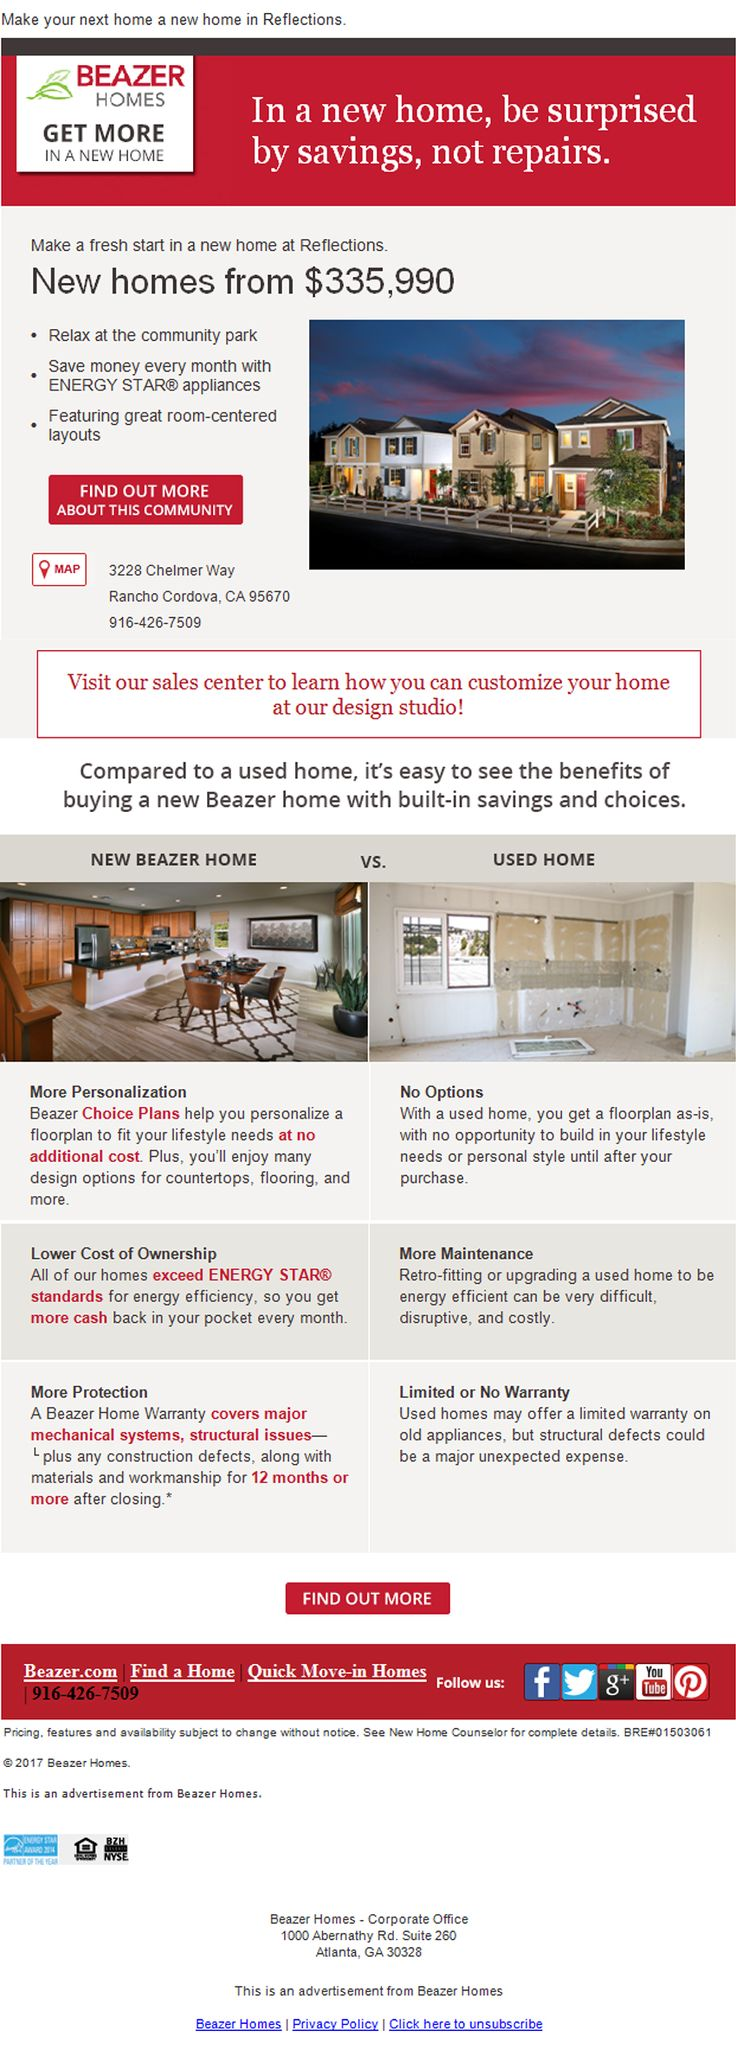 New Homes for Sale in Rancho Cordova, California  Why buy used when you can buy NEW?  Reflections in Capital Village… More personalization, Lowe Cost of Ownership, More Protections with the Beazer Home Warranty!    https://www.beazer.com/sacramento-CA/reflections-at-capital-village